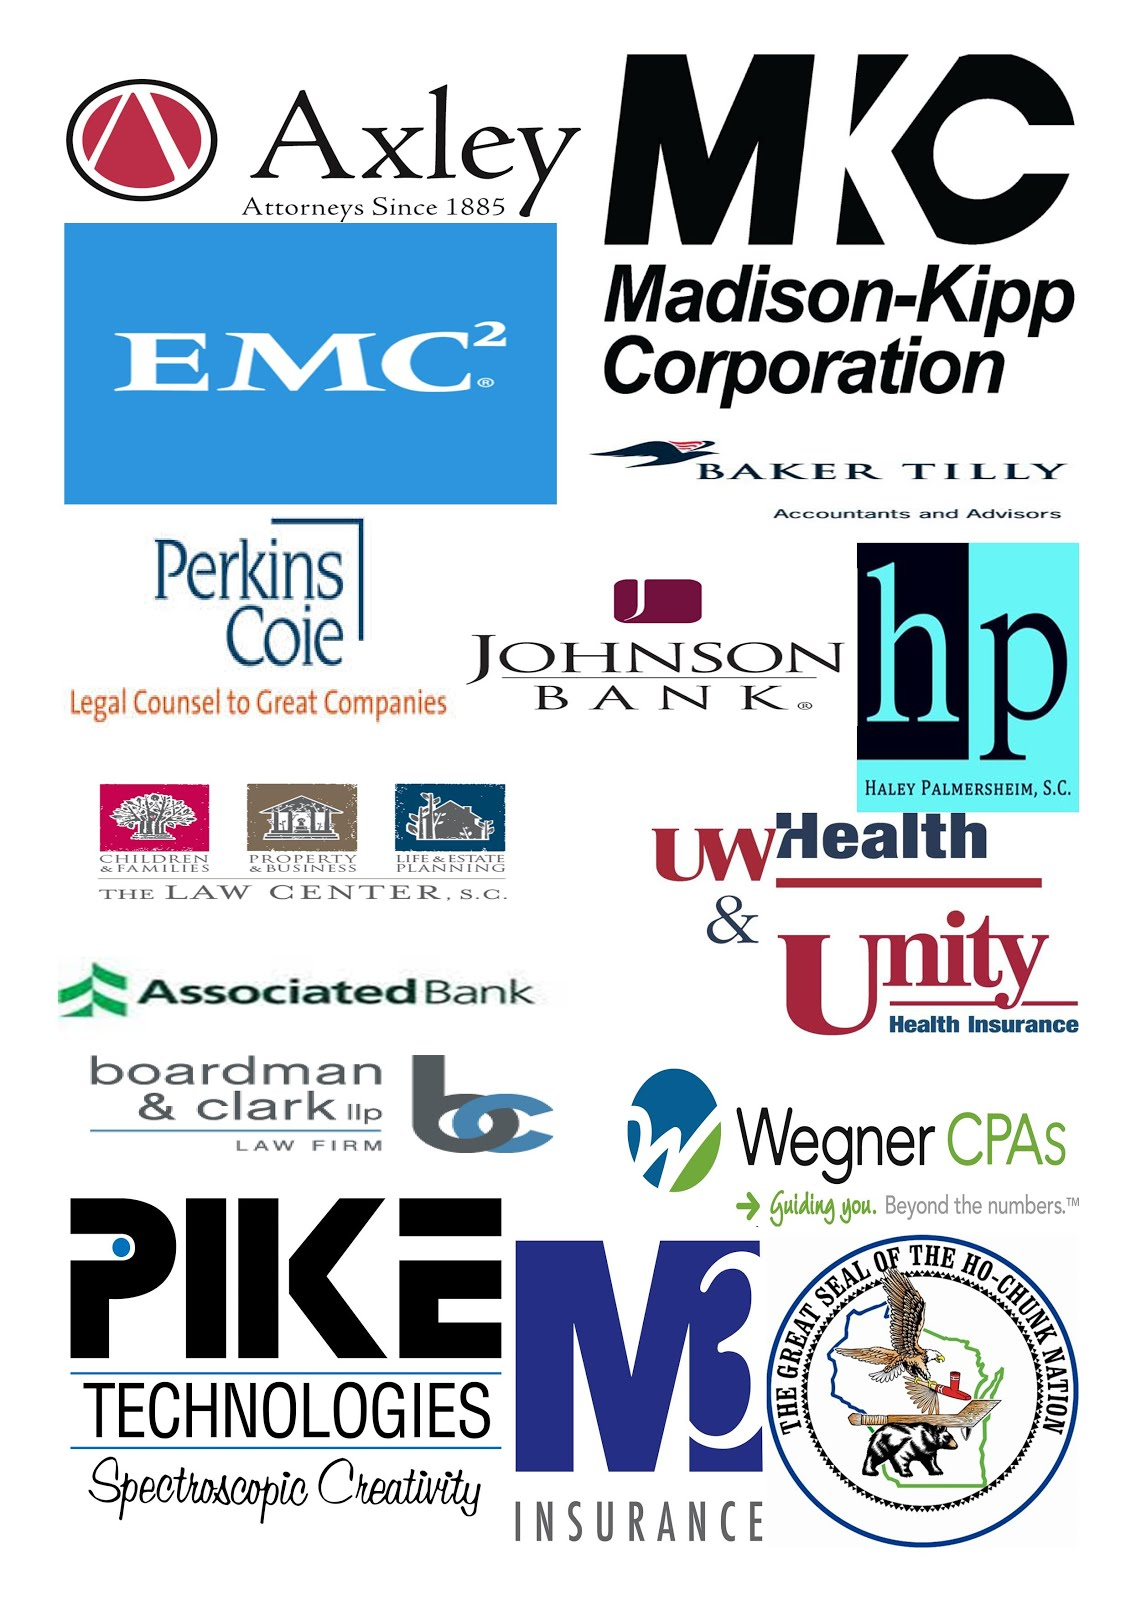 Special Thanks to our Corporate Sponsors